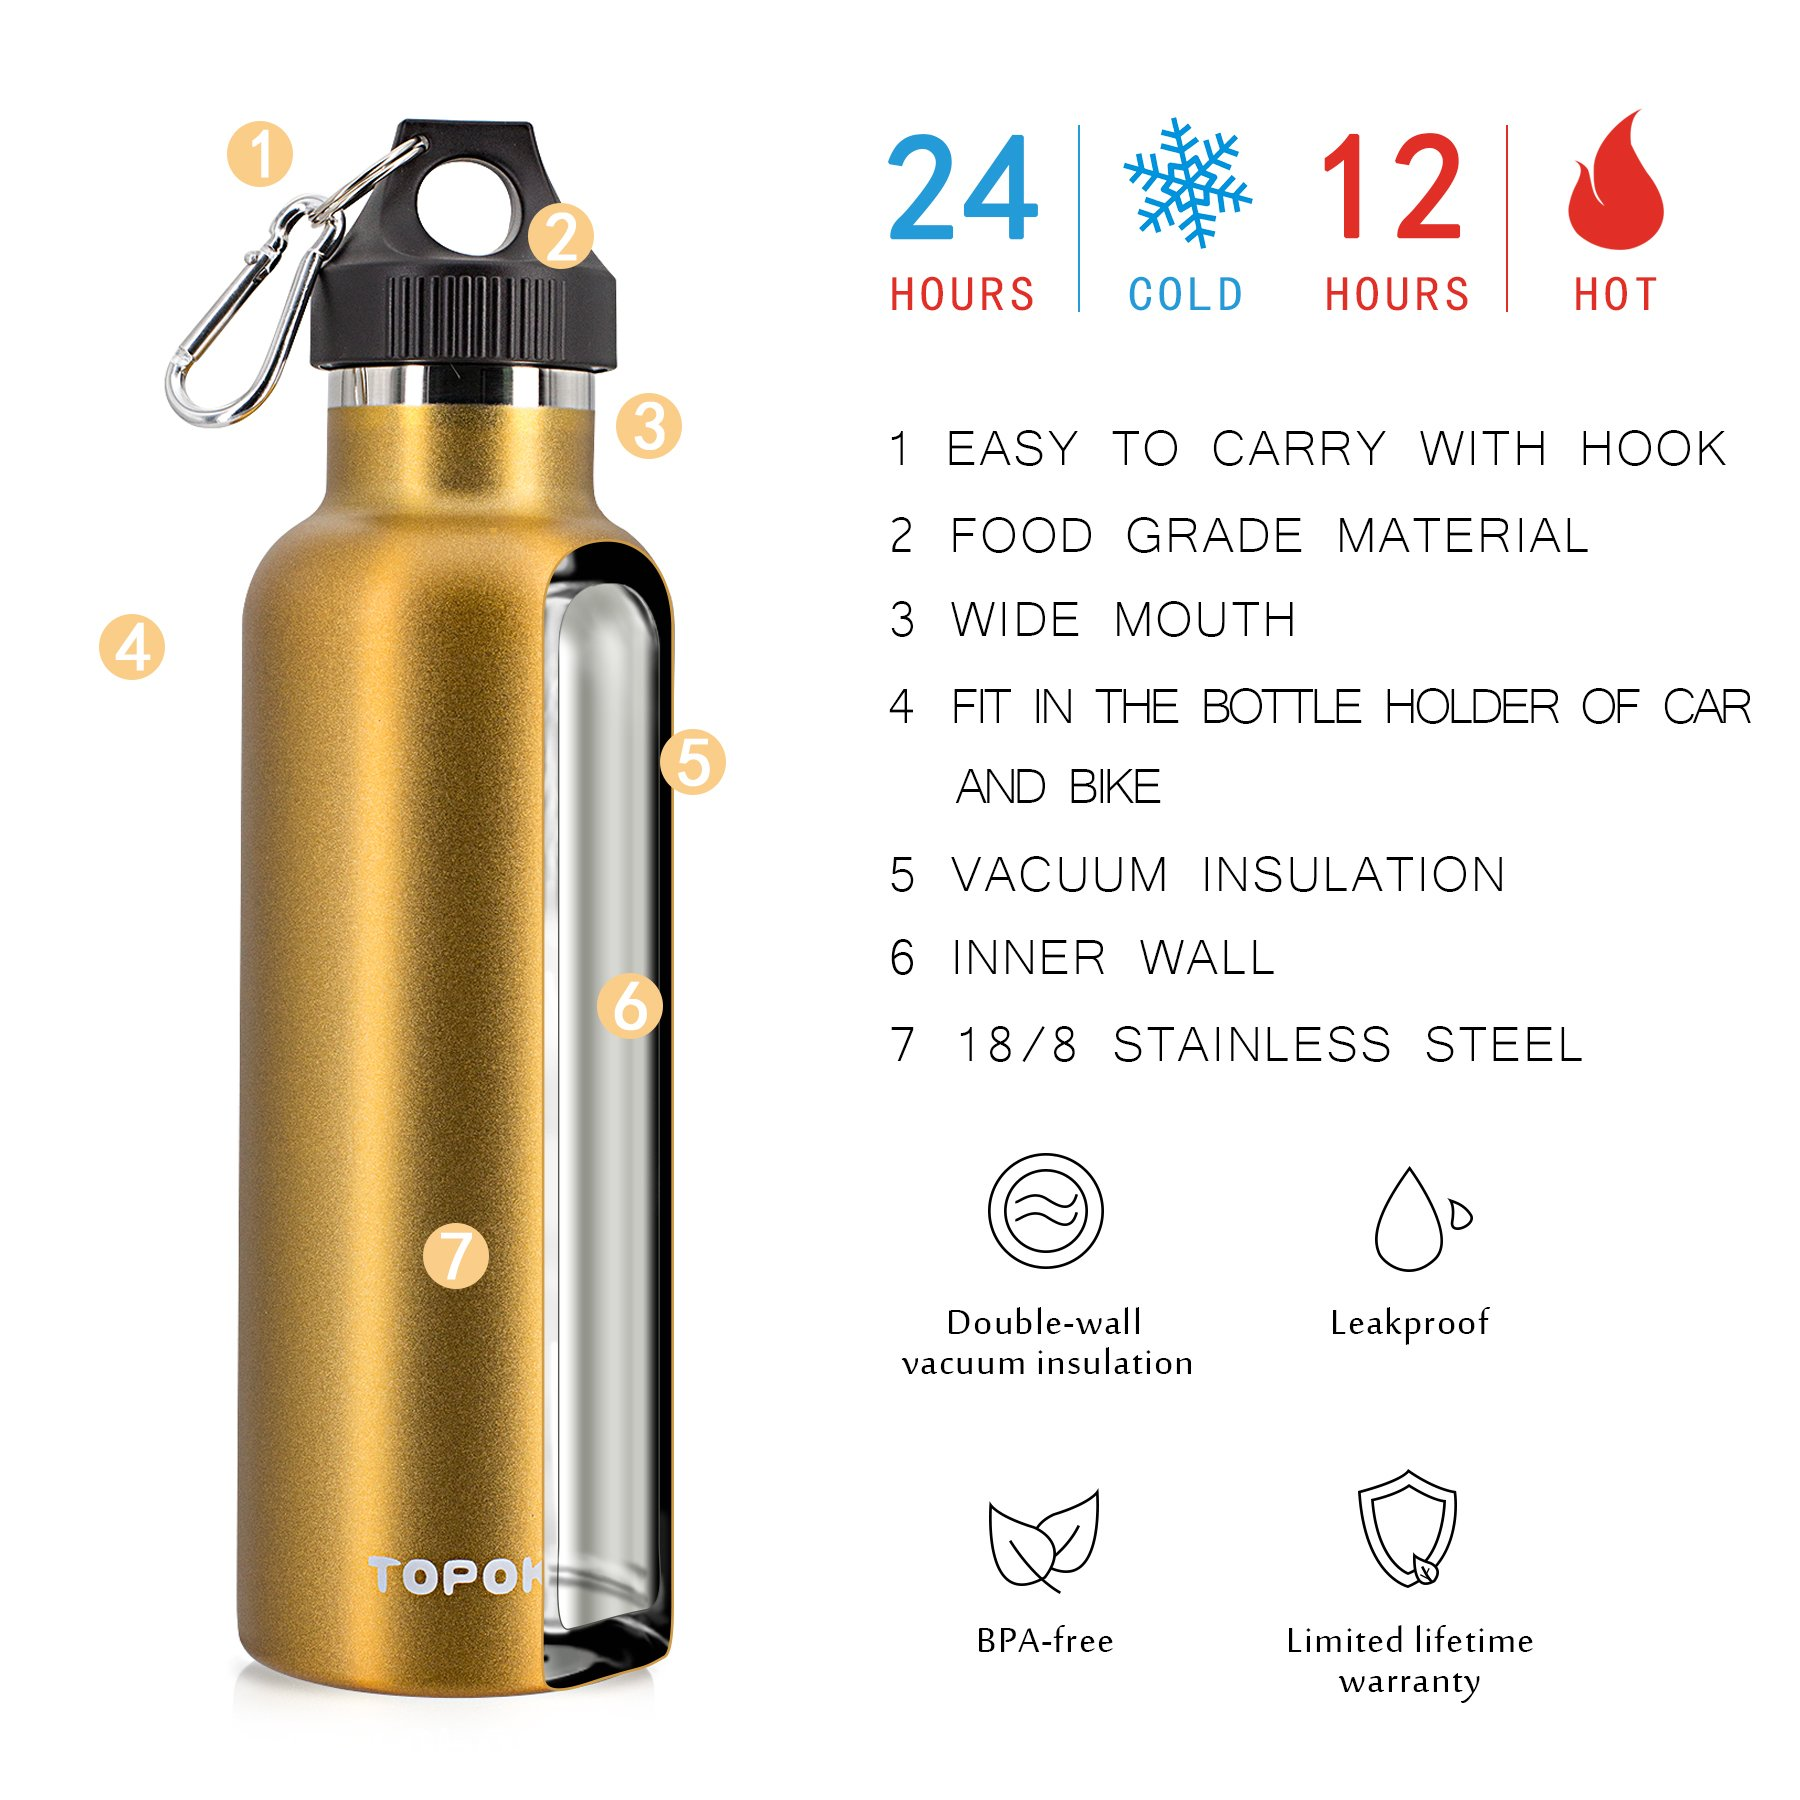 Stainless Steel Vacuum Insulated Water Bottle Double Wall - TOPOKO Top Quality Hydration Thermos - Camping Hiking Travel No Leak Rust Resistant Colored - 25 oz, Gold by TOPOKO (Image #8)